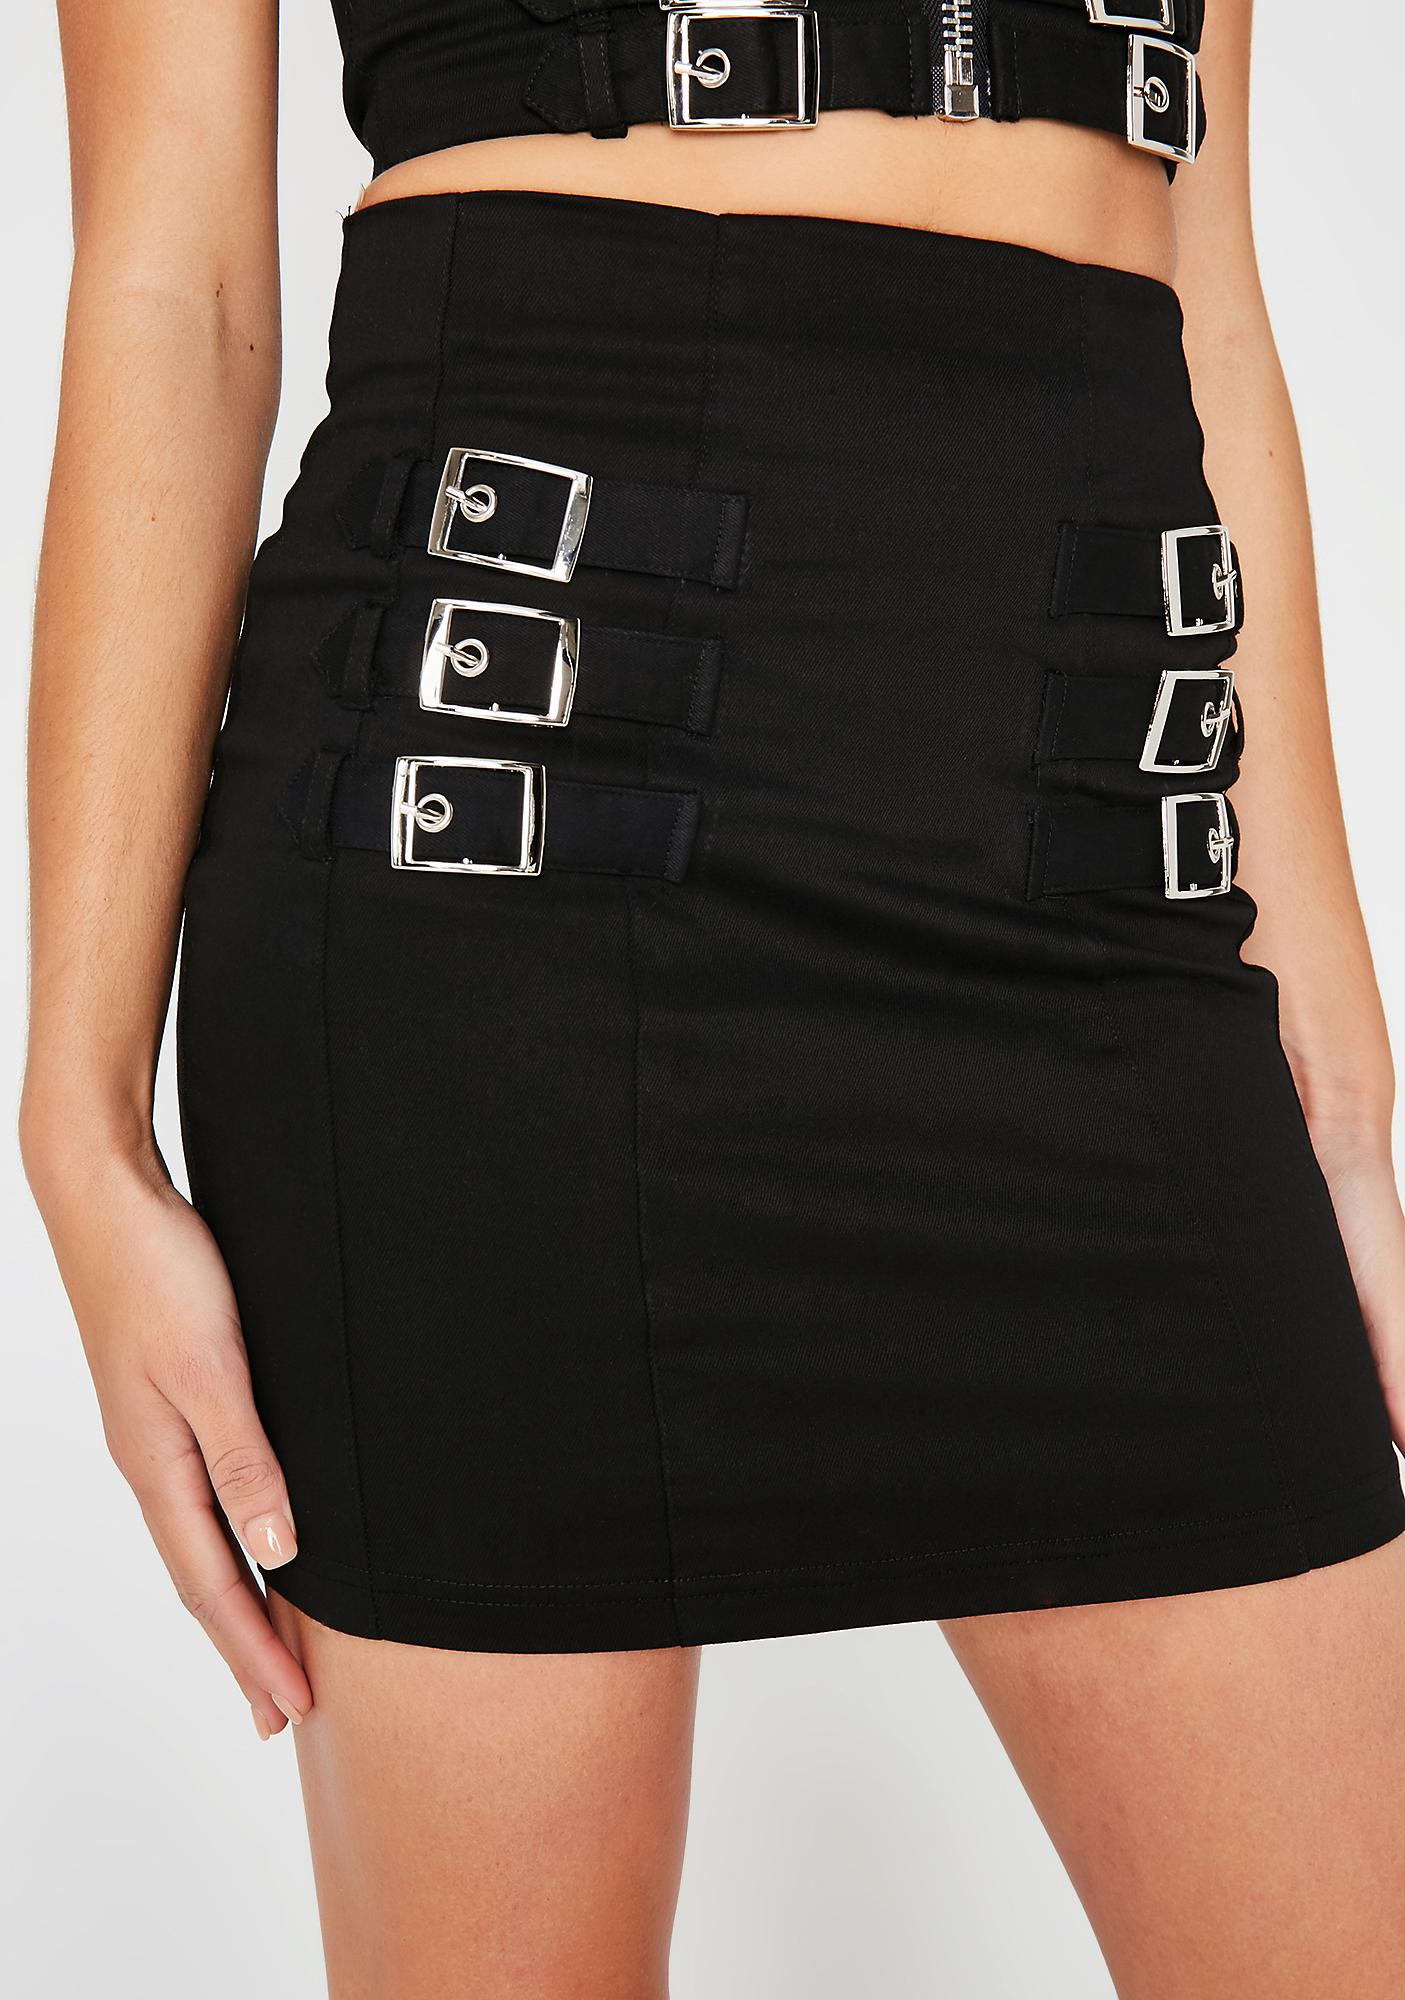 So Secure Mini Skirt